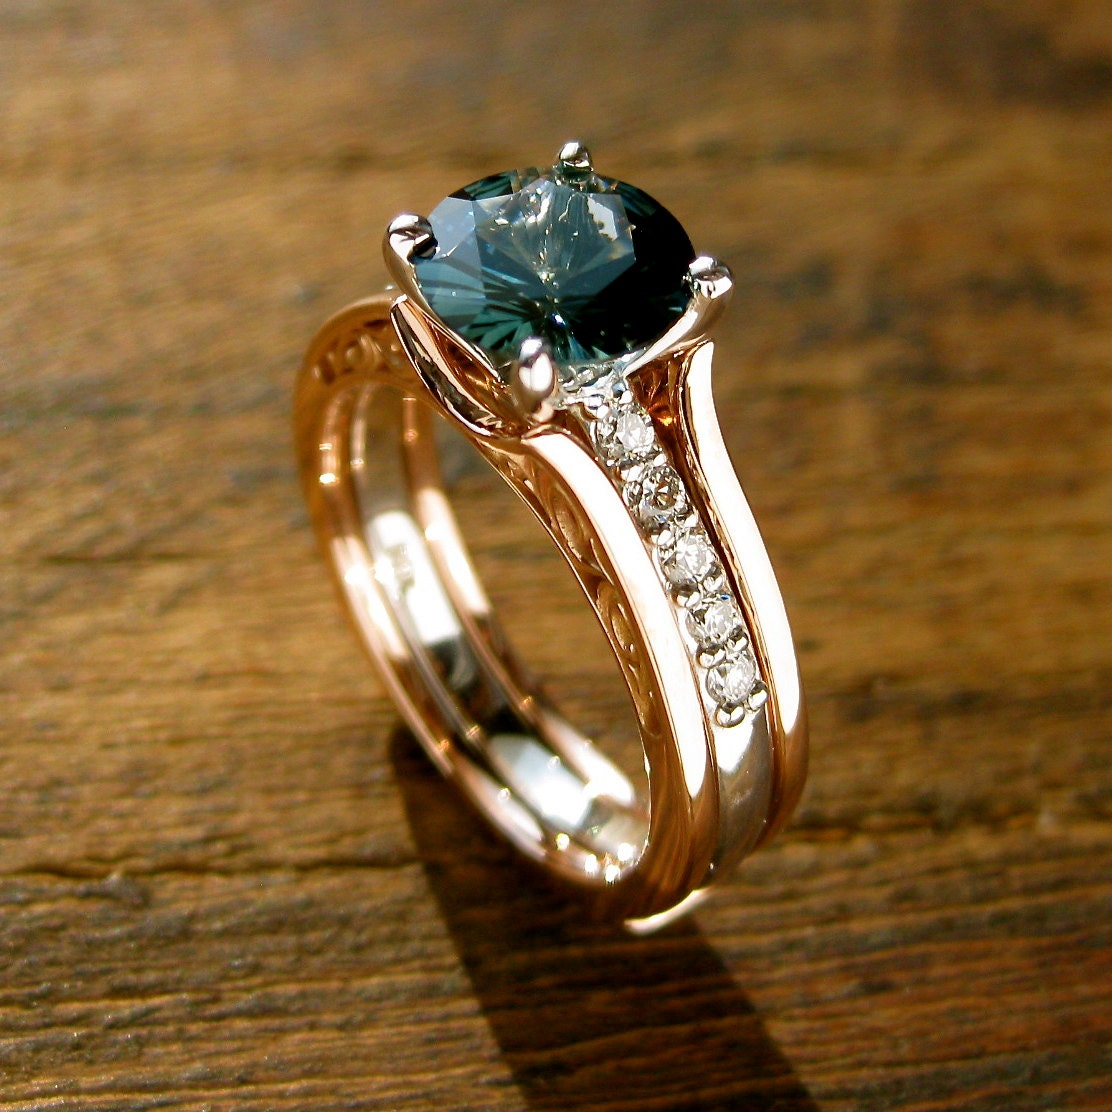 Teal Blue Sapphire Engagement Ring With Diamonds In 14k White